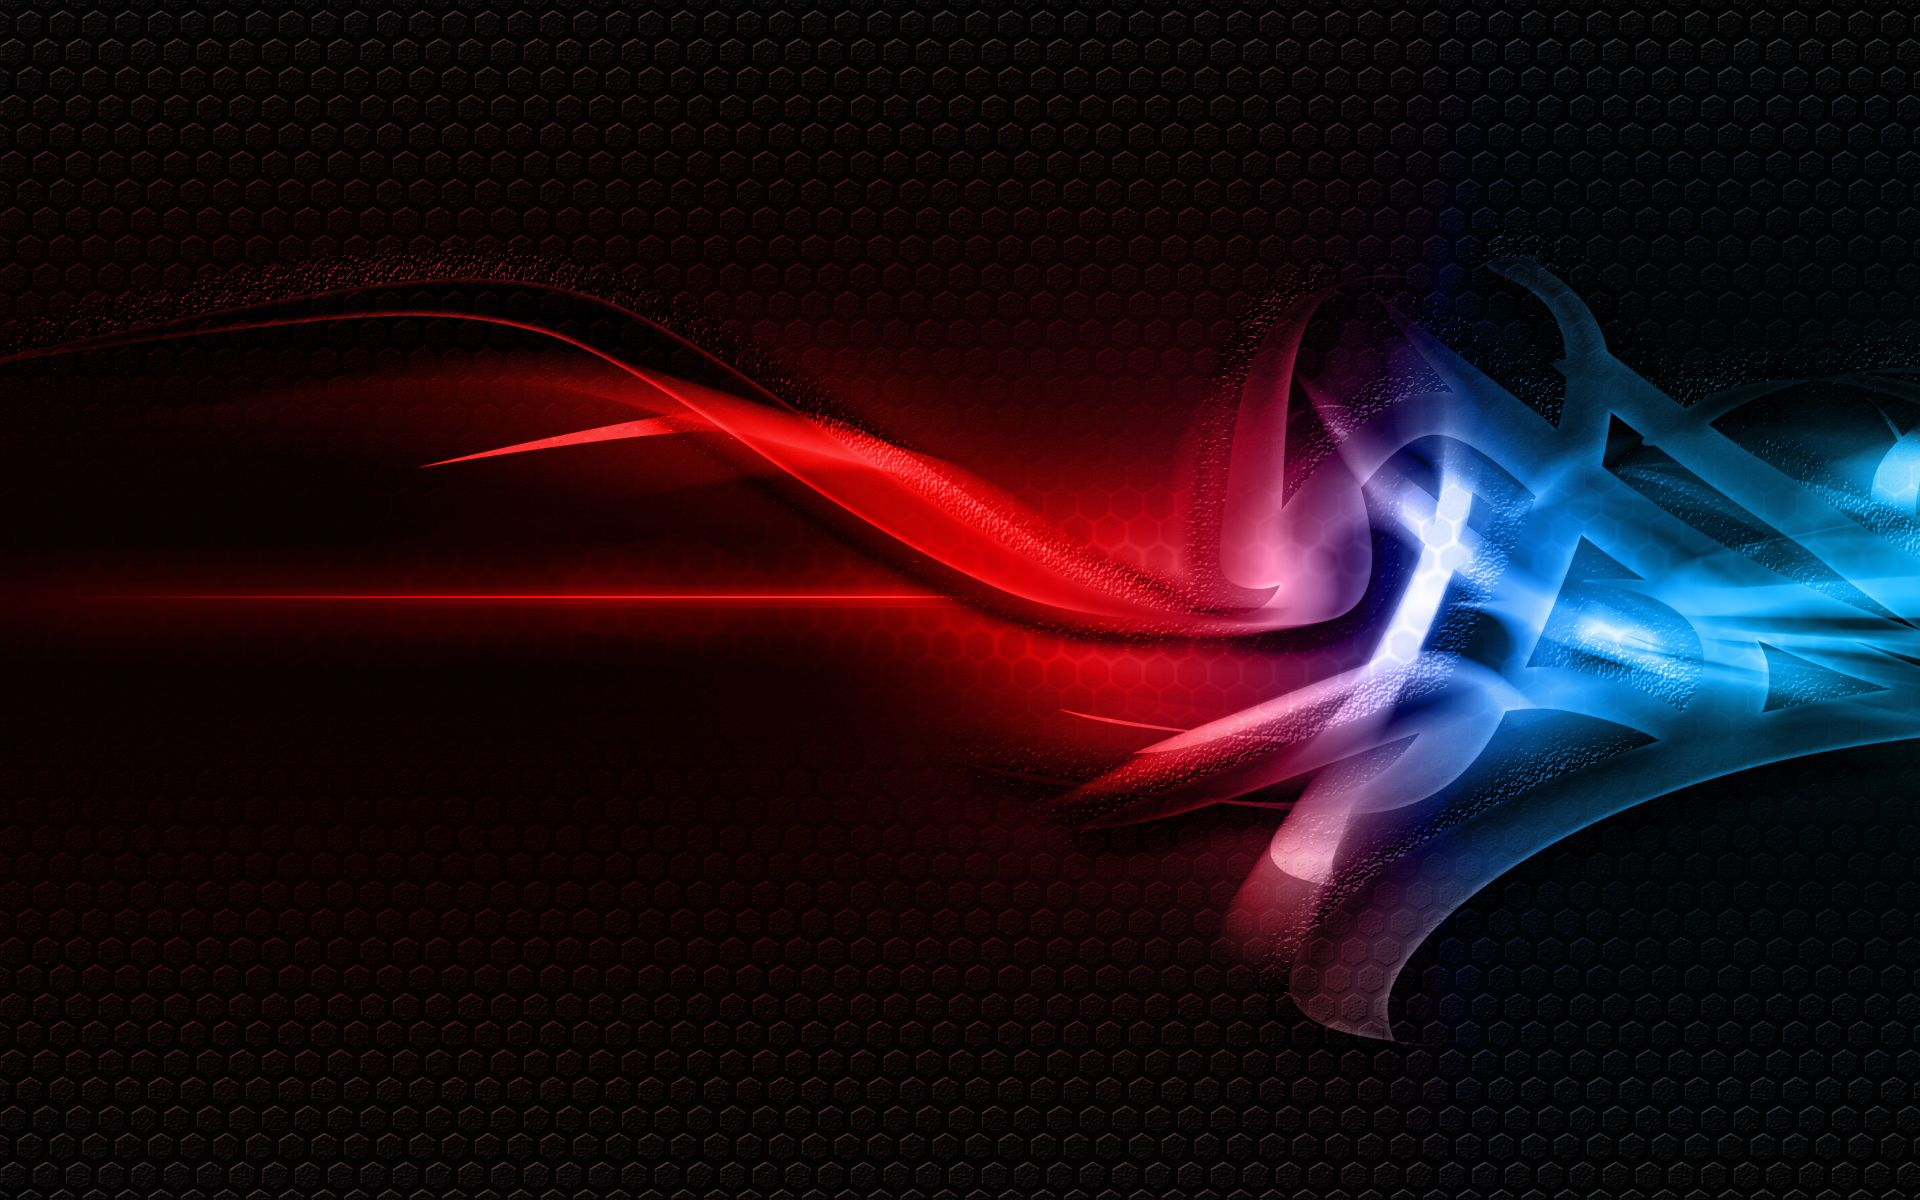 Hd Backgrounds Red And Blue Abstract Art Wallpaper Abstract